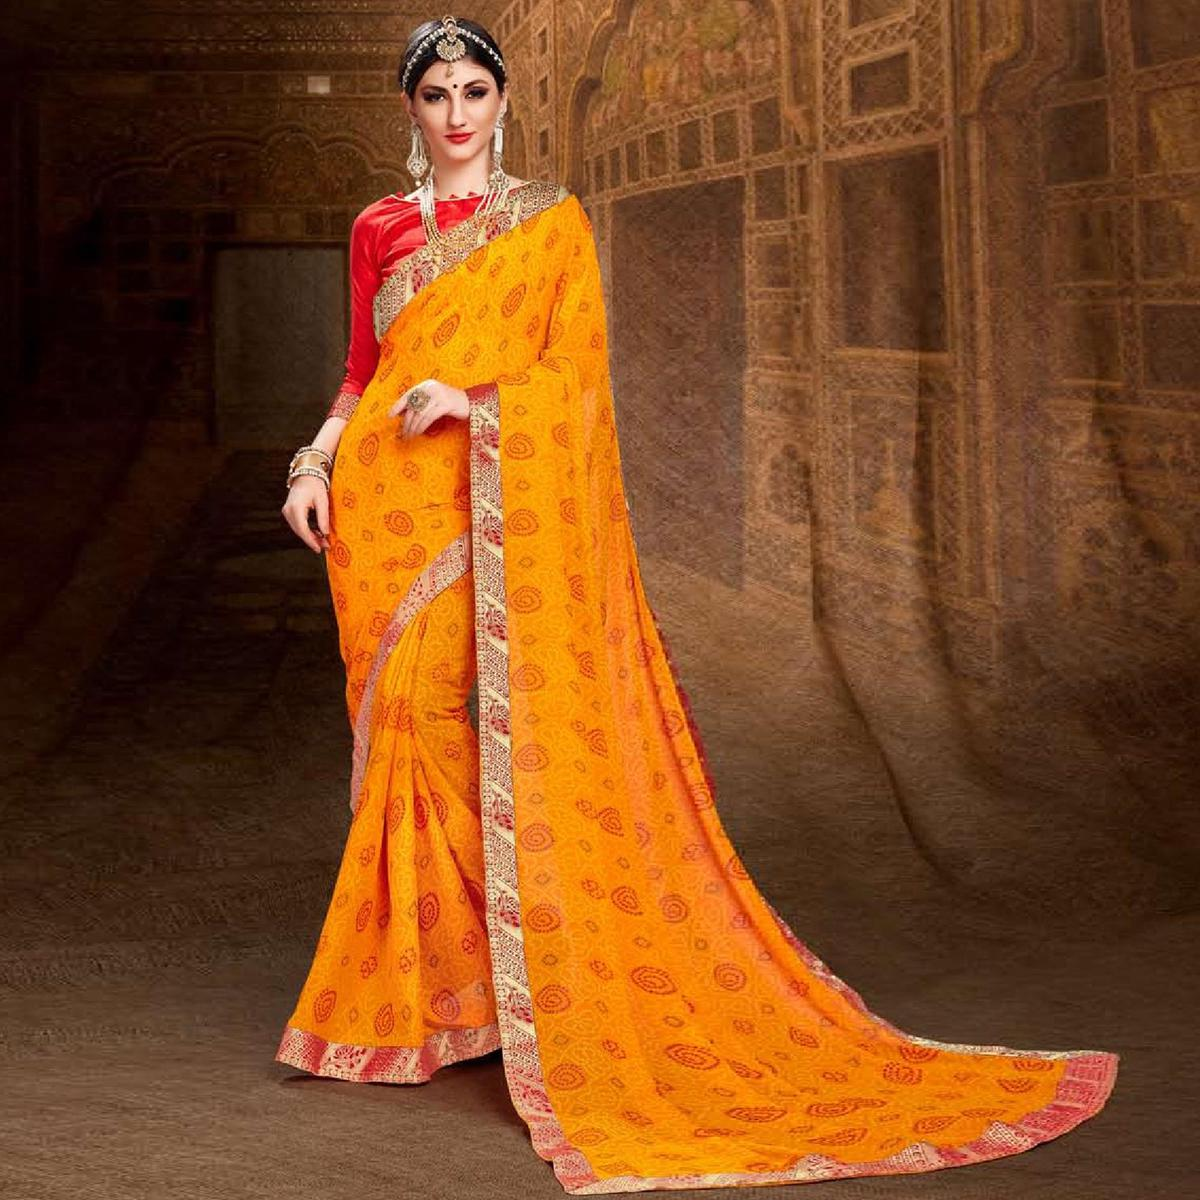 Glowing Orange Colored Bandhani Printed Heavy Georgette Saree With Jacquard Lace Border